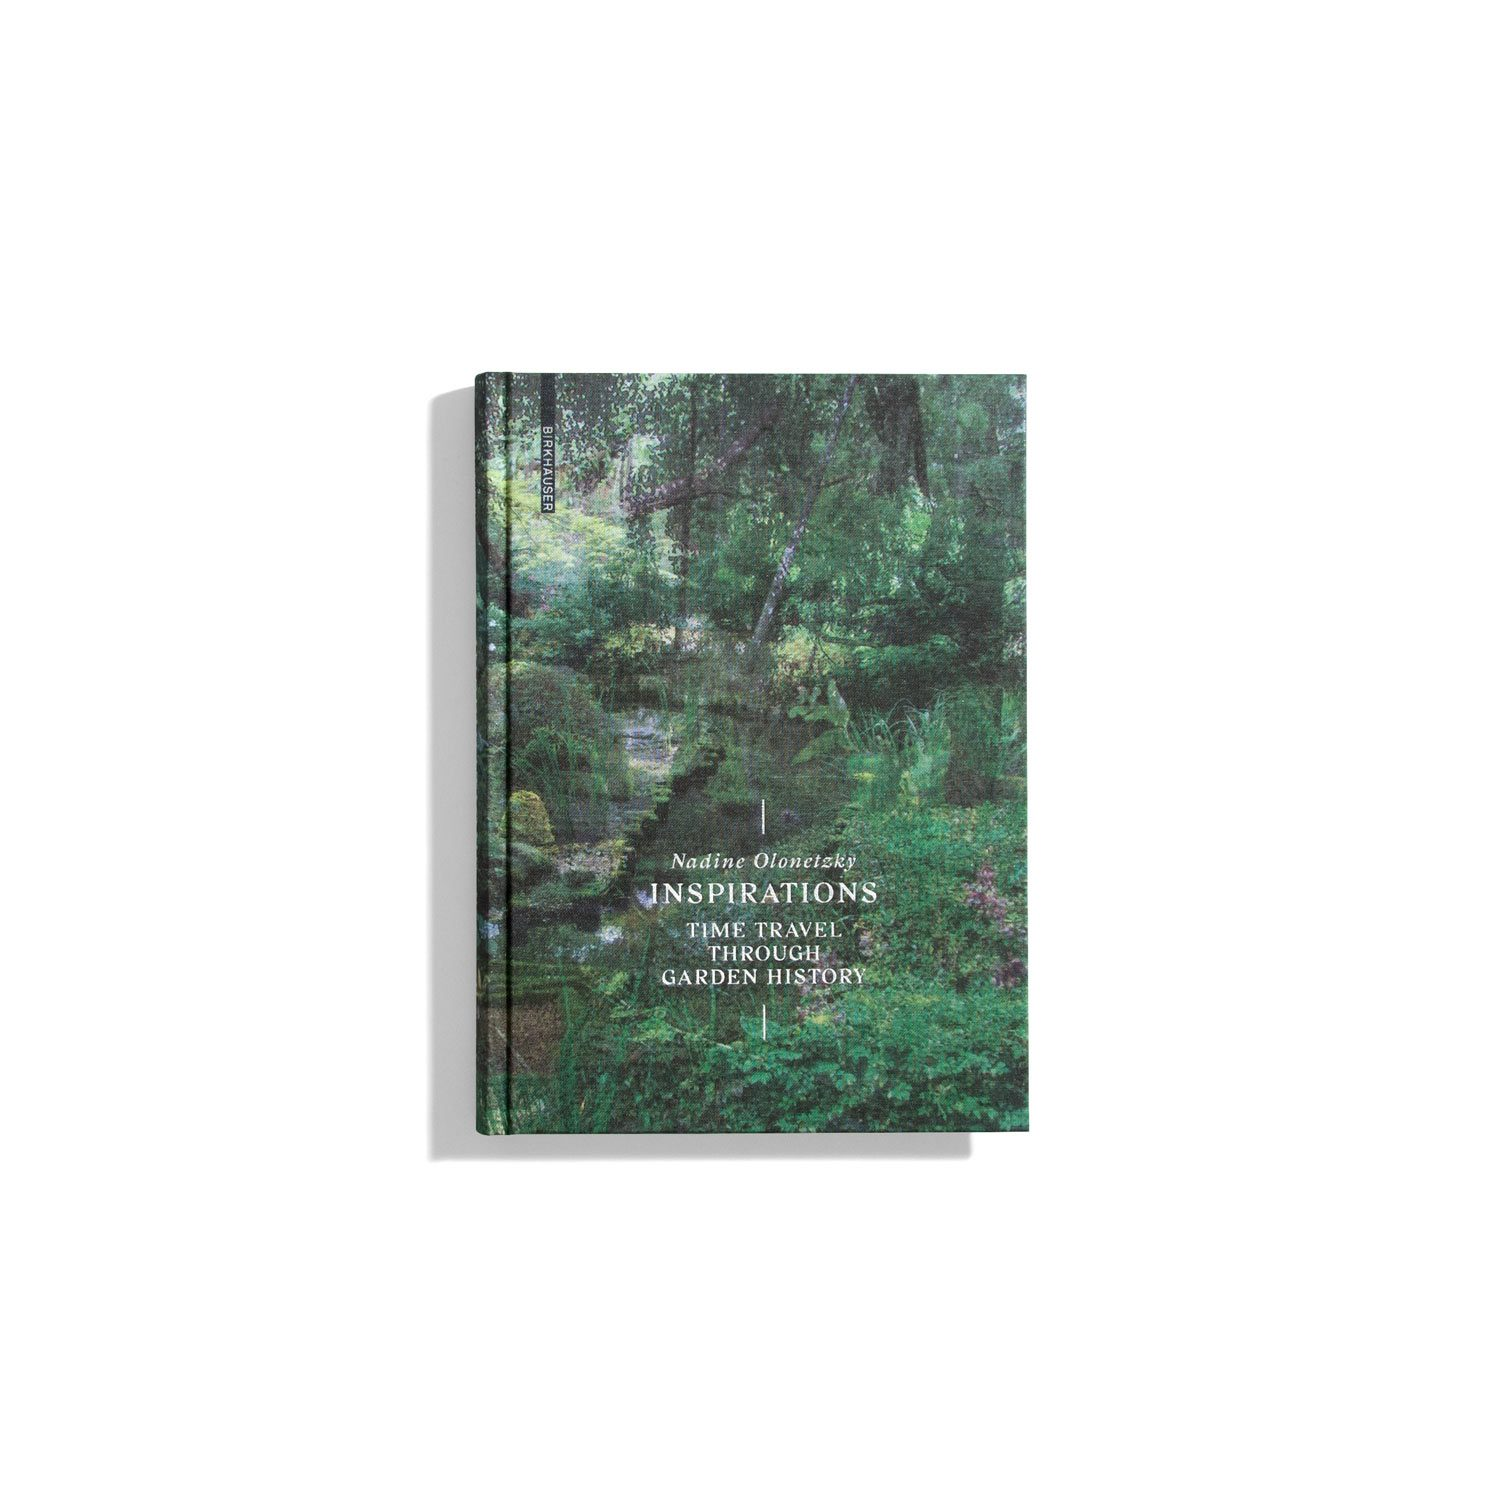 Inspirations: A Time Travel through Garden History - Nadine Olonetzky